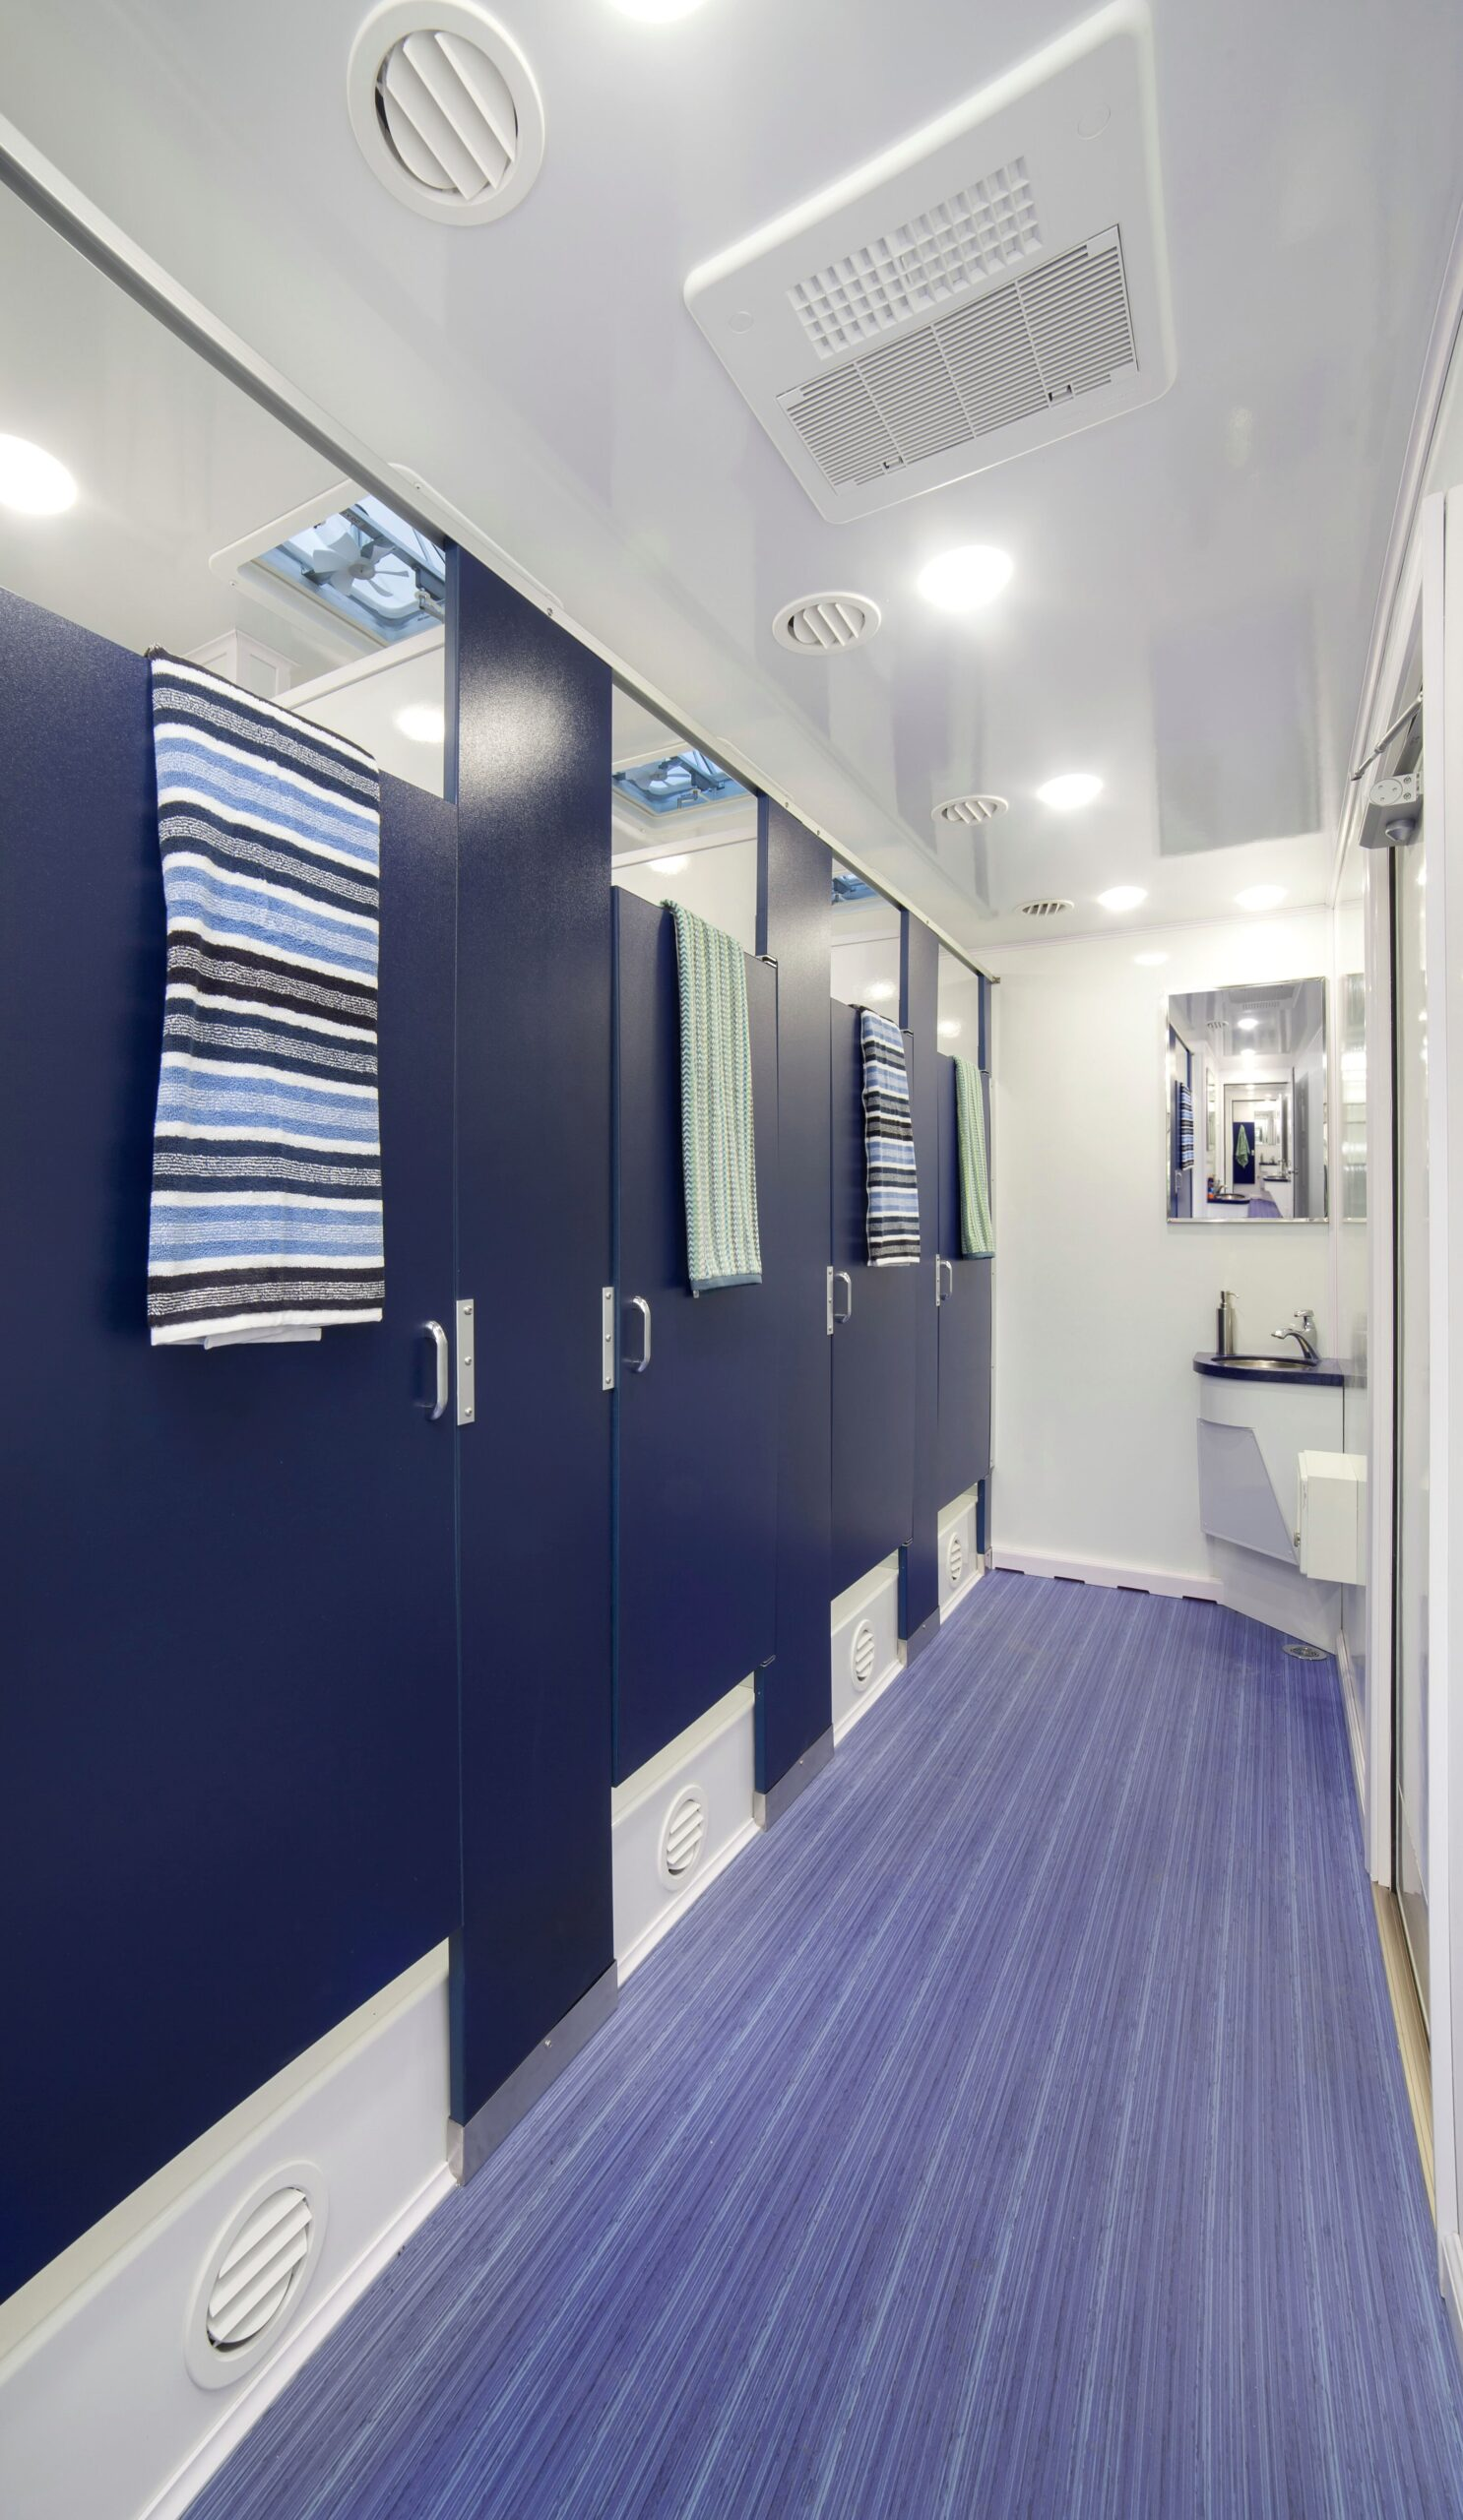 Interior of shower restroom with blue doors and sink at the end of a passage